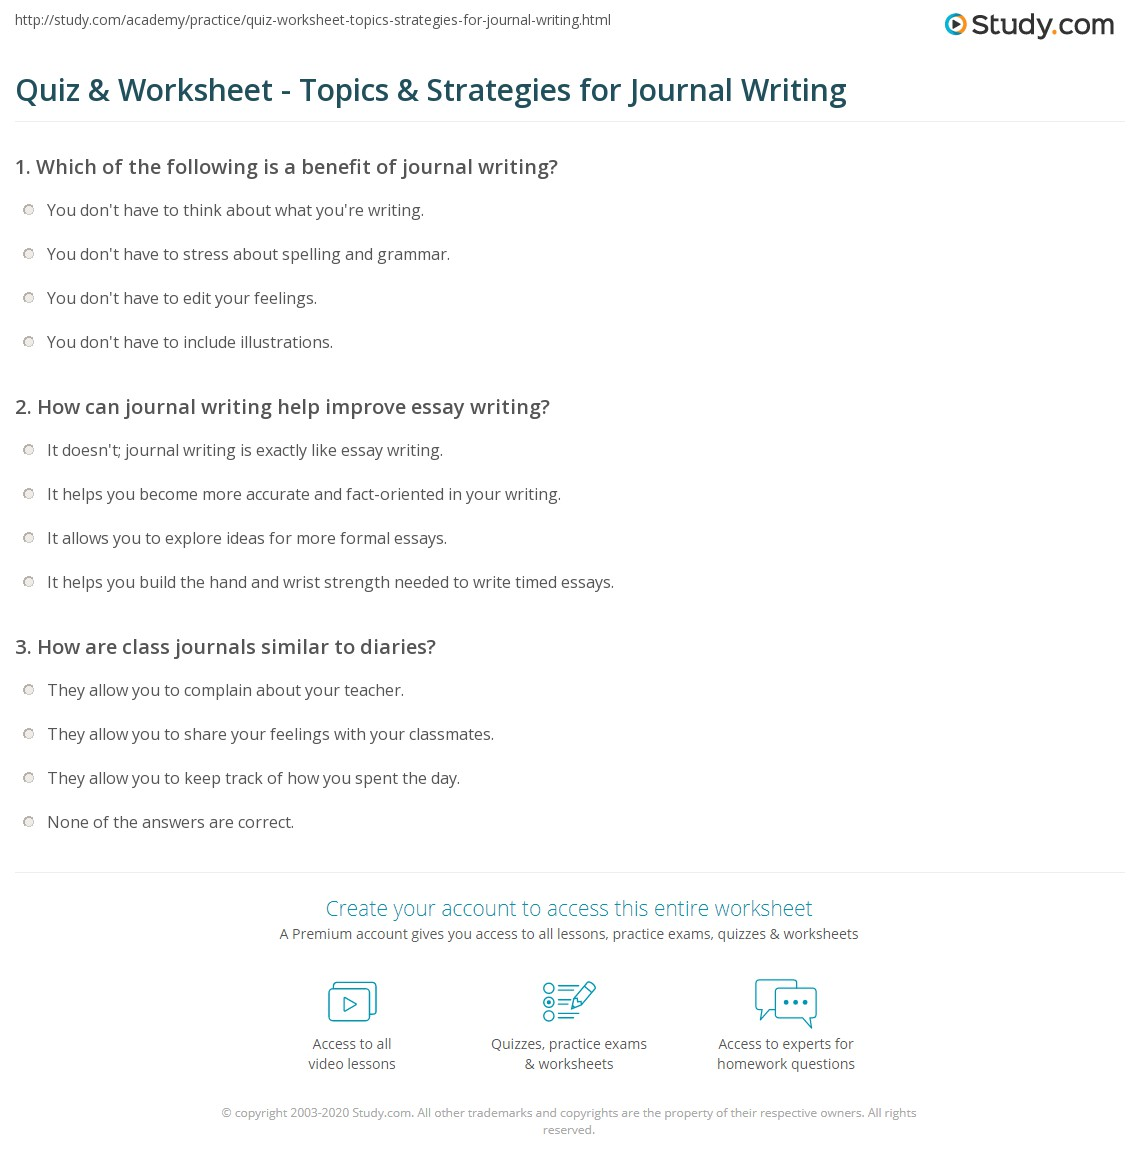 Topics To Practice Writing 100 Writing Practice Lessons Amp Exercises 01 29